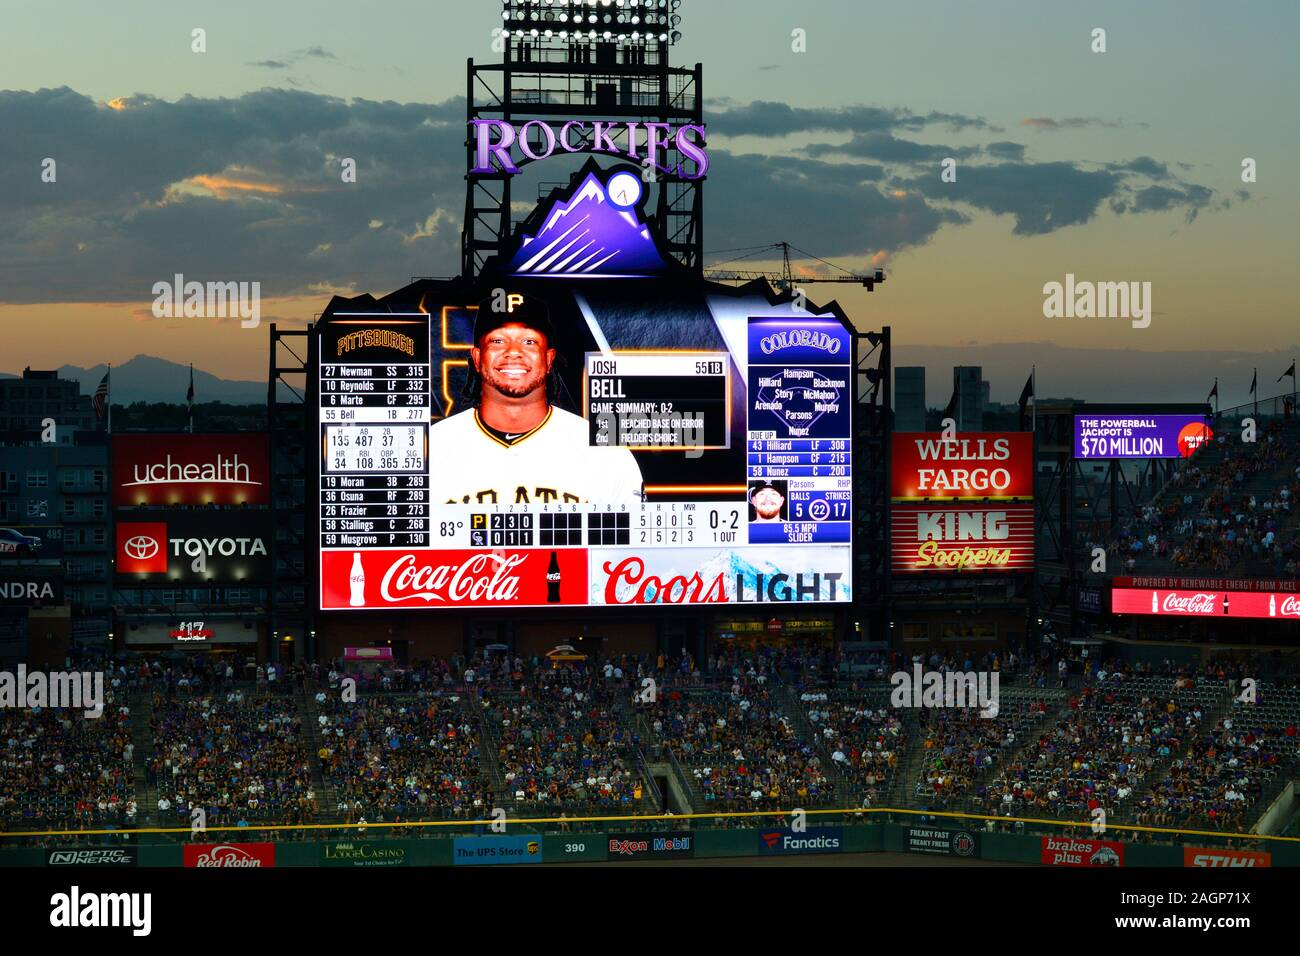 Jumbotron High Resolution Stock Photography And Images Alamy